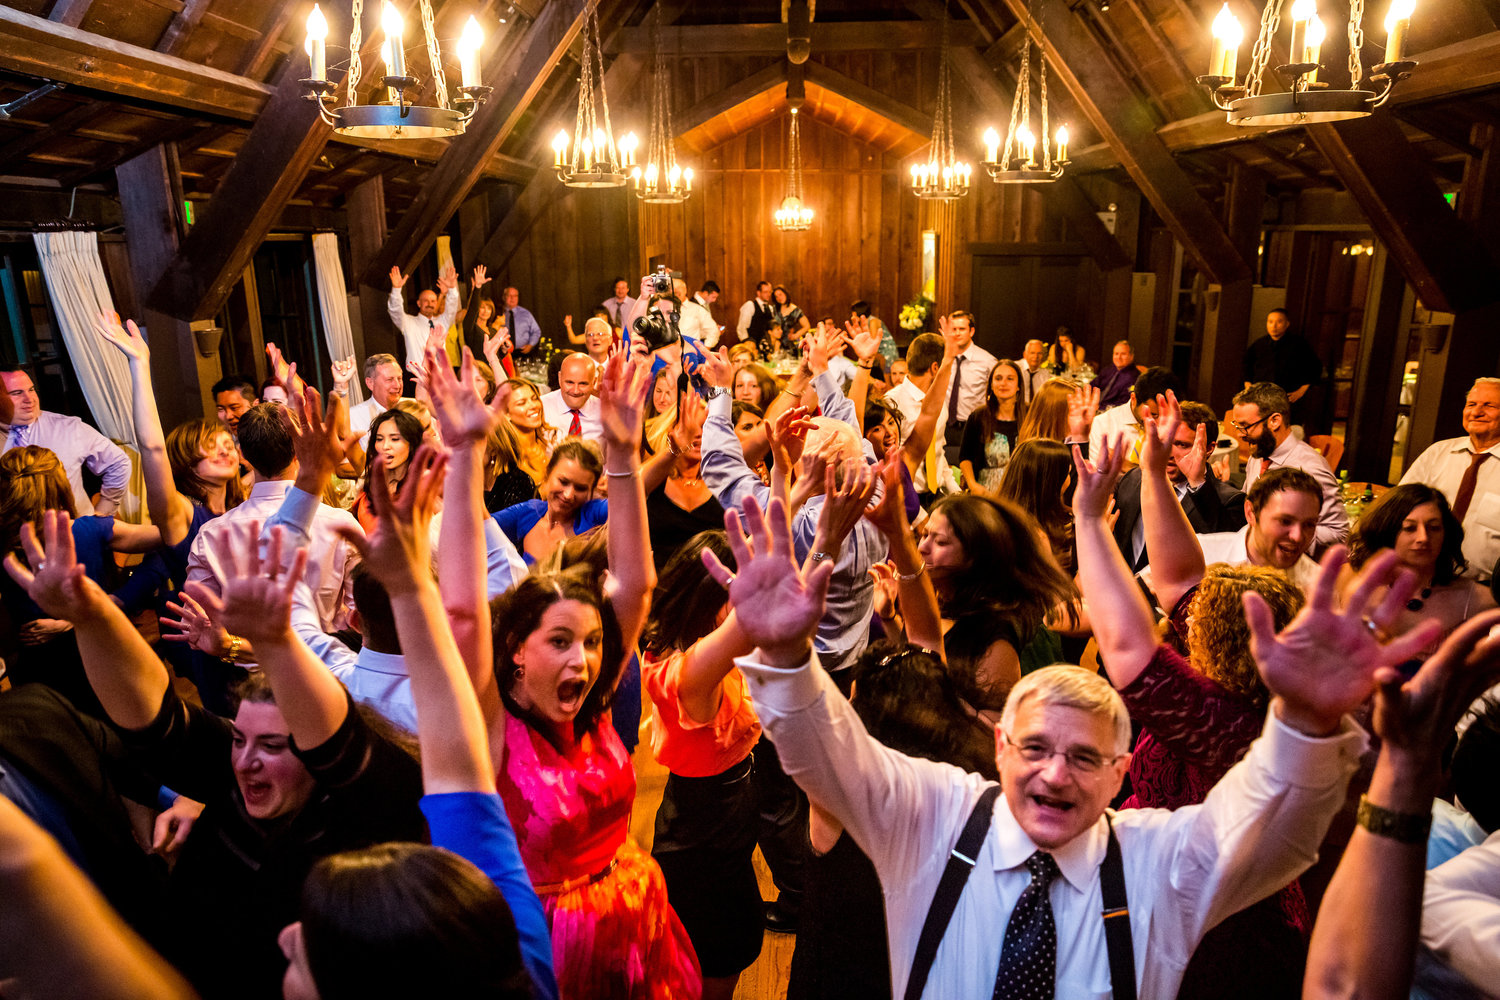 fill-the-dance-floor-at-your-wedding.jpg